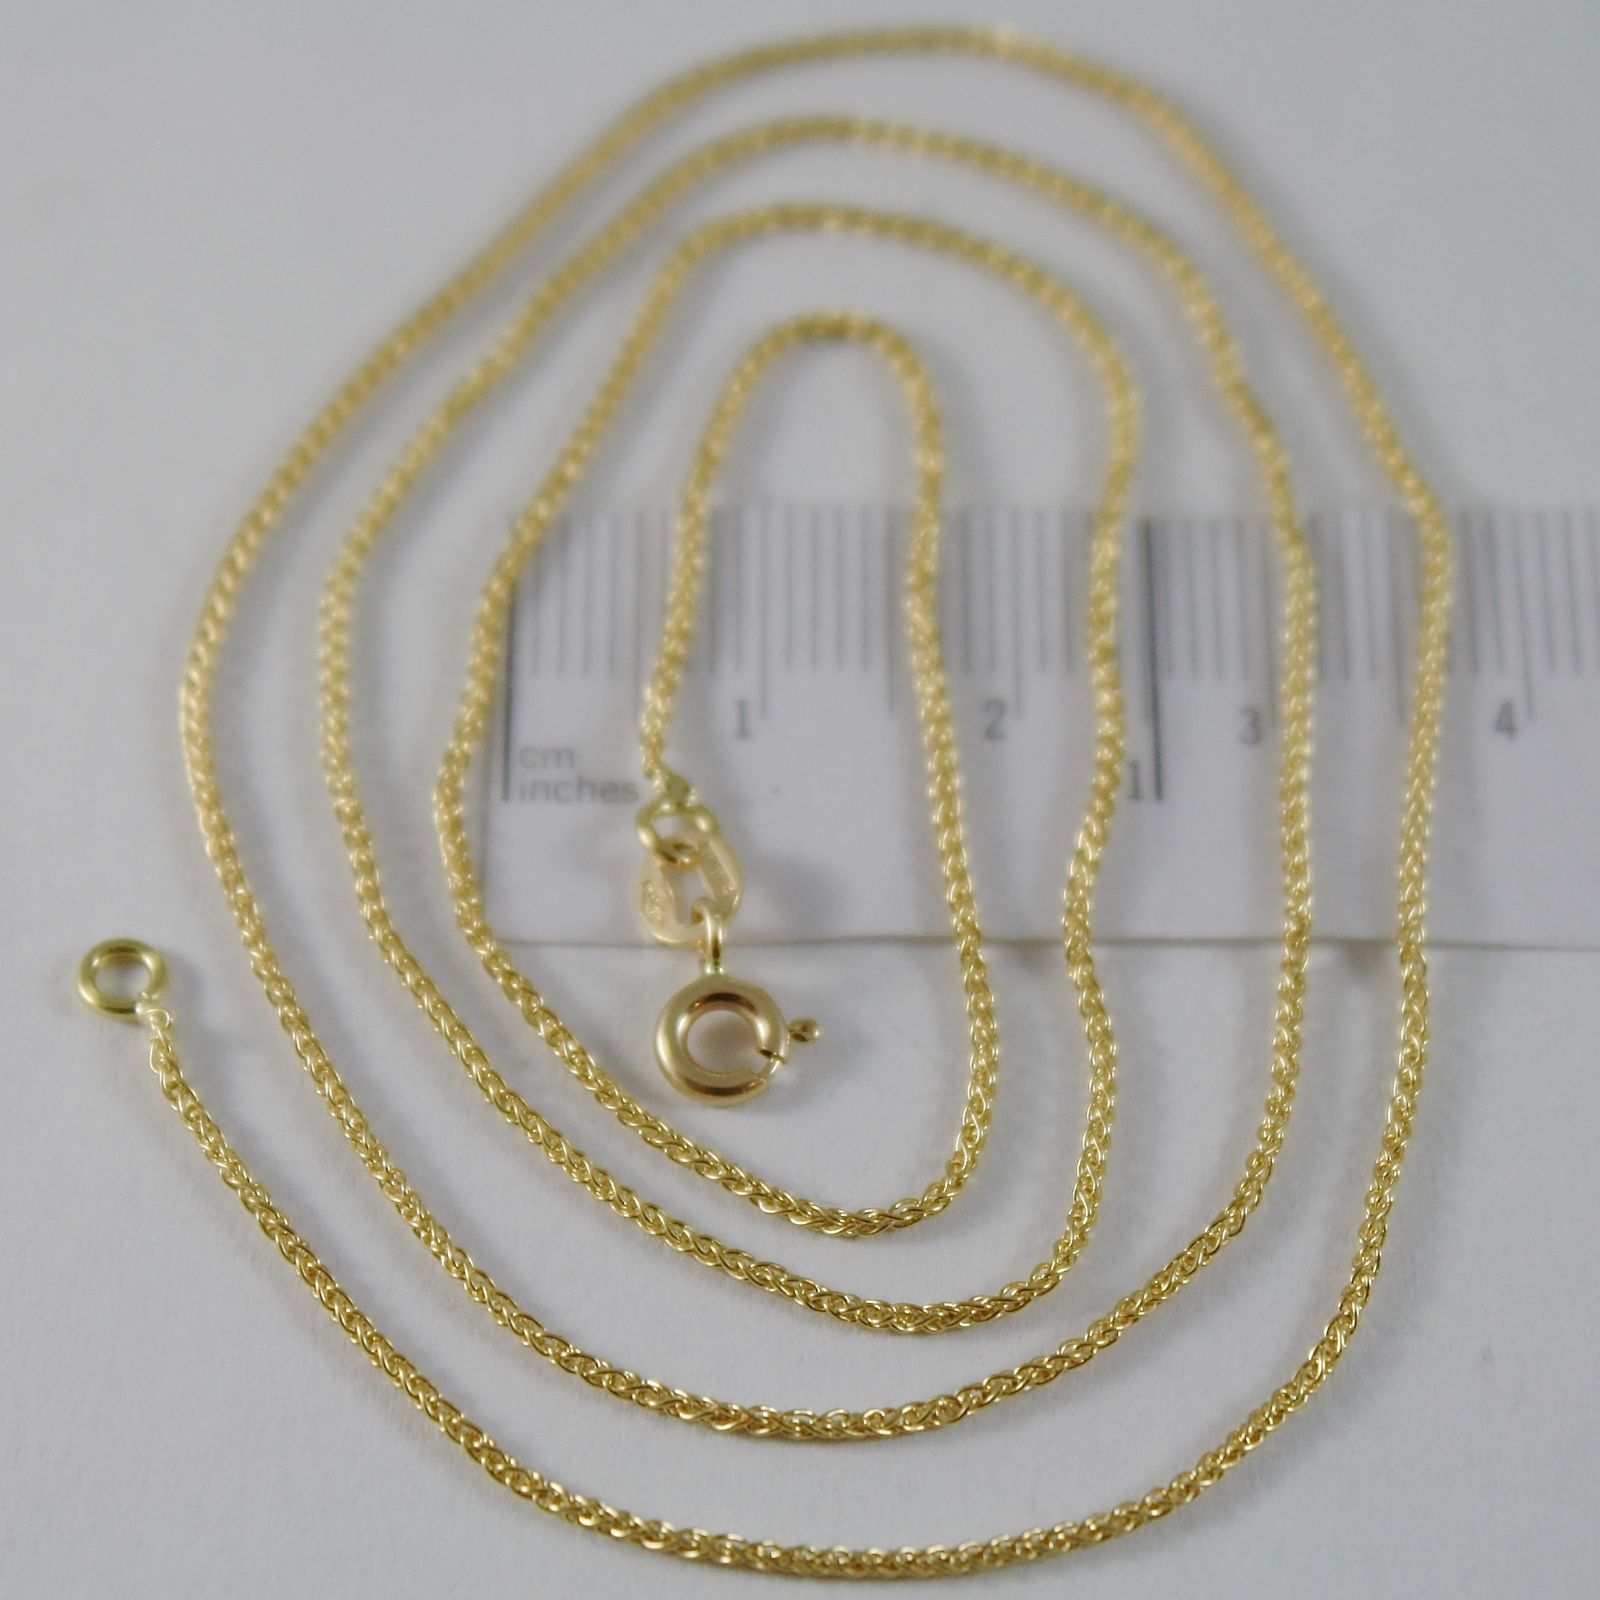 SOLID 18K YELLOW GOLD SPIGA WHEAT EAR CHAIN 20 INCHES, 1.2 MM, MADE IN ITALY